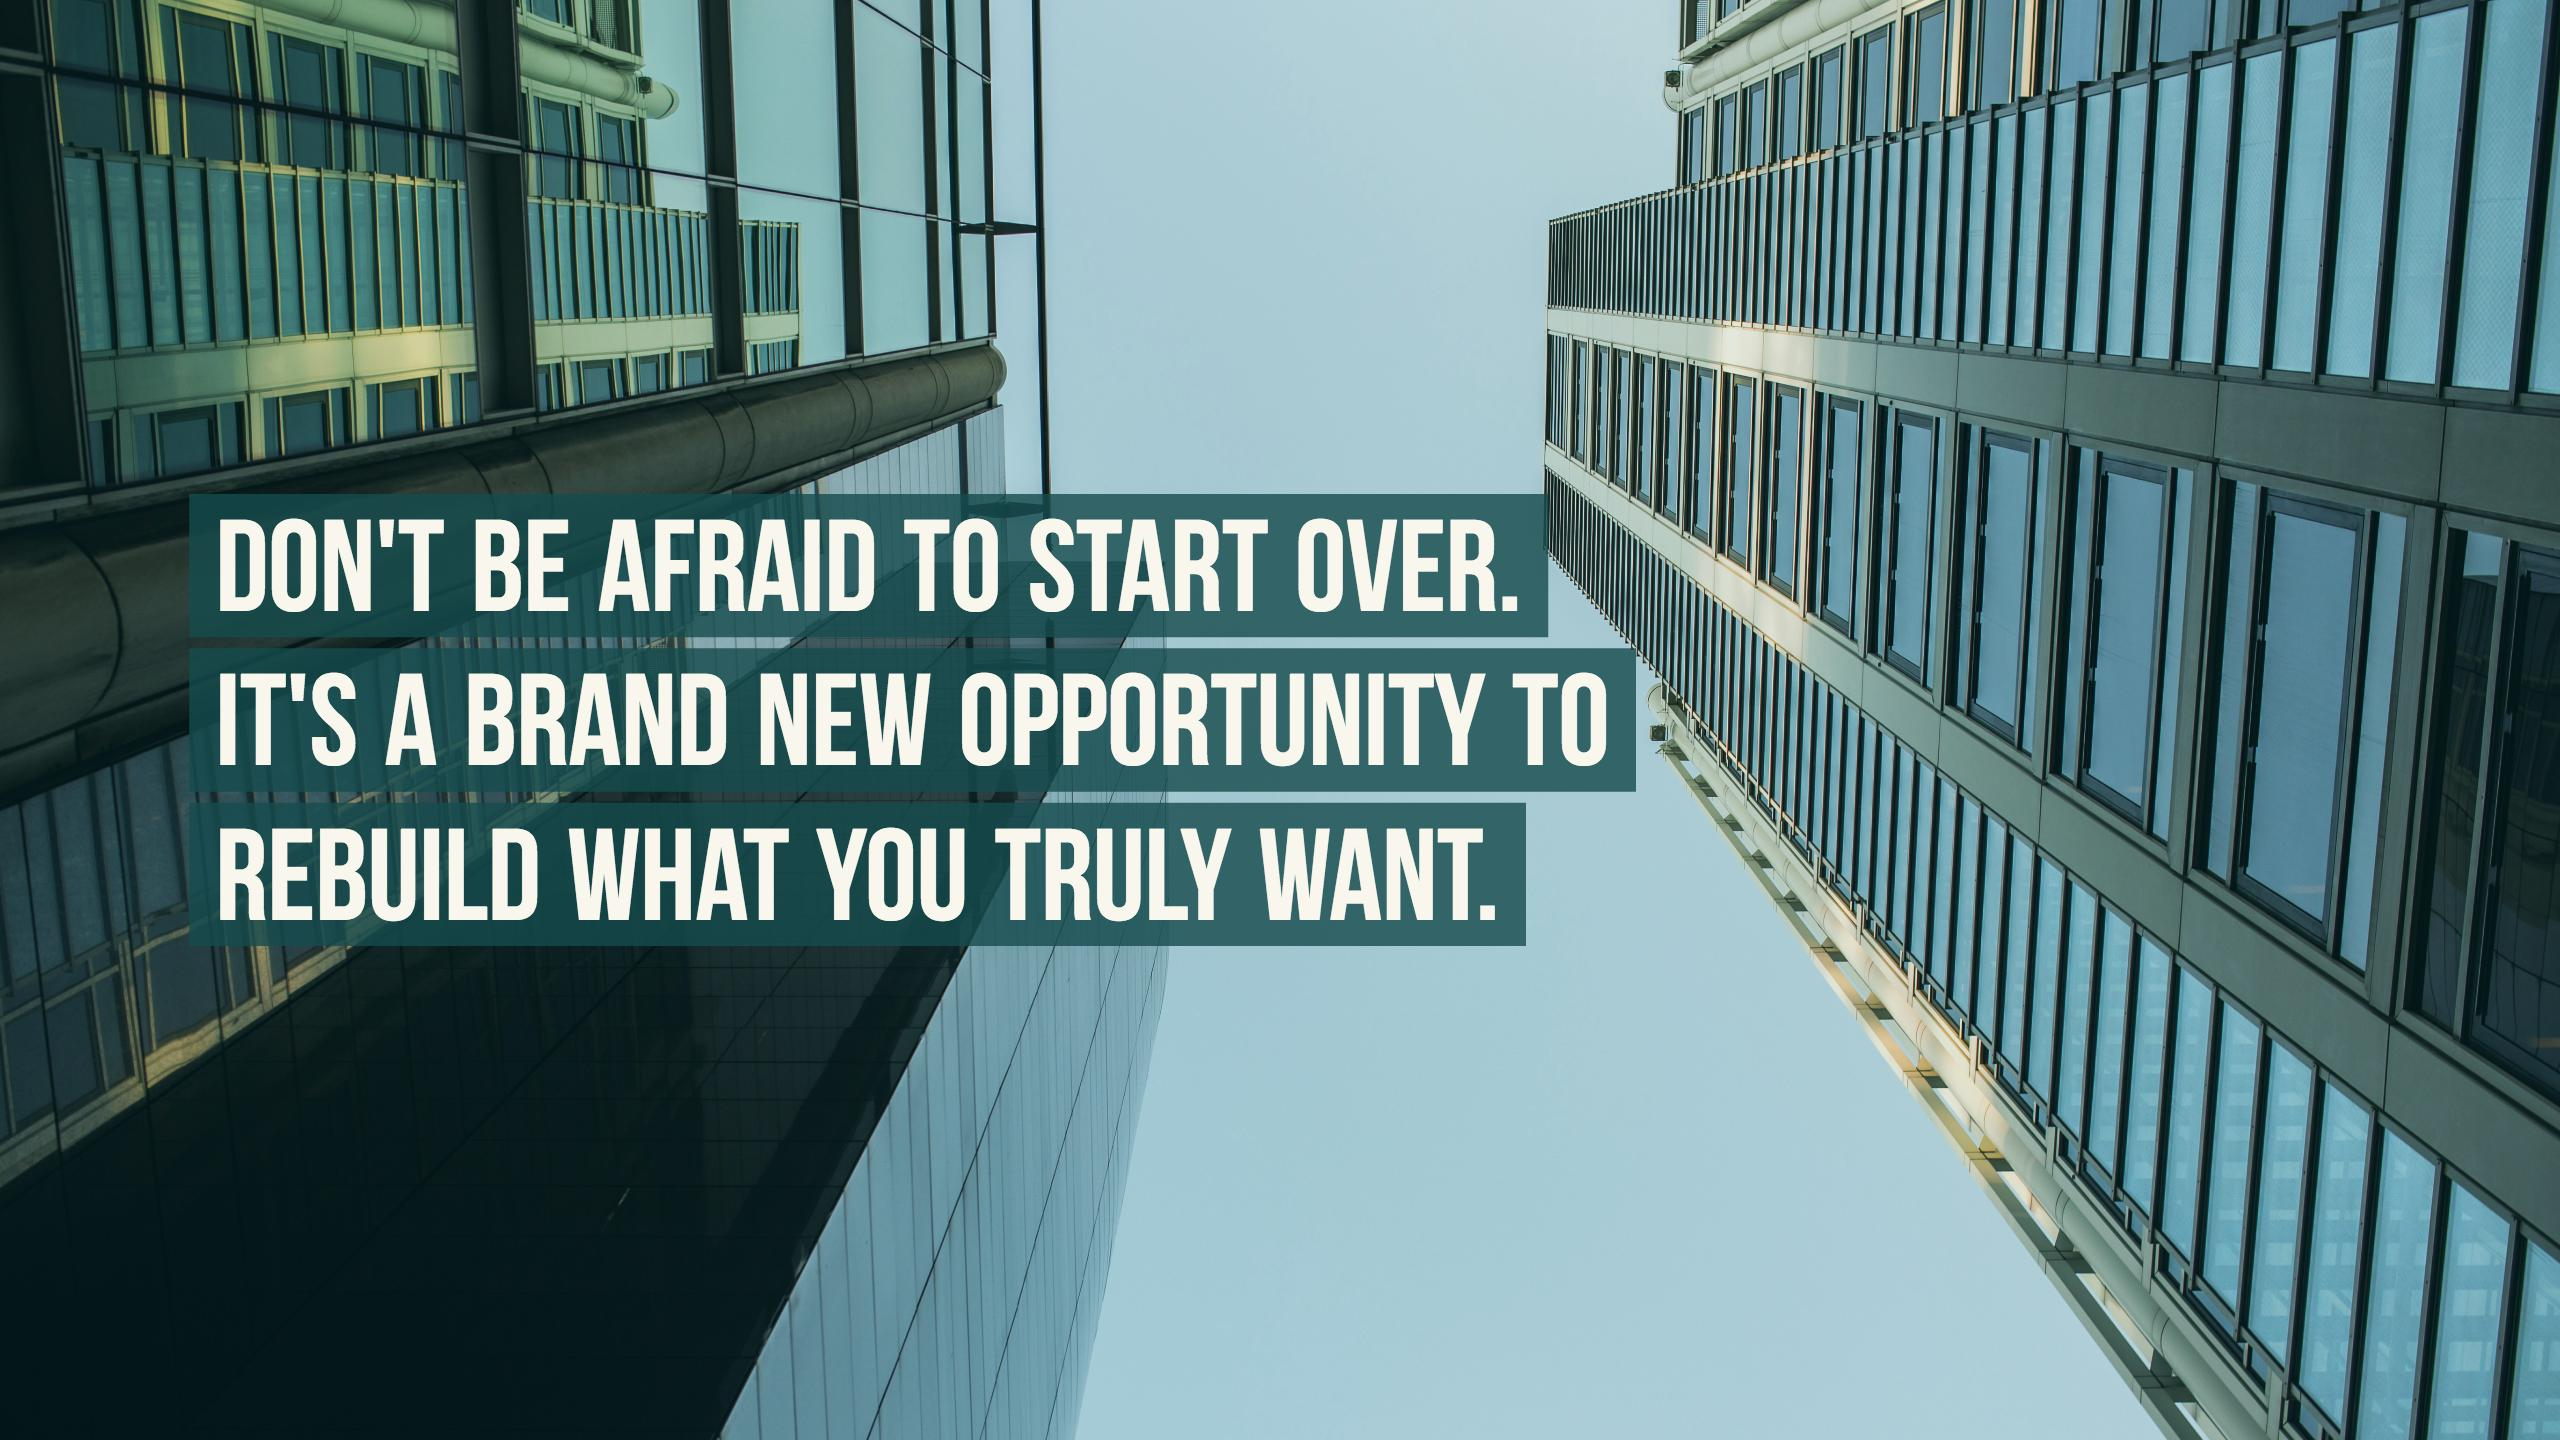 Don't be afraid to start over. It's a brand new opportunity to rebuild what you truly want.